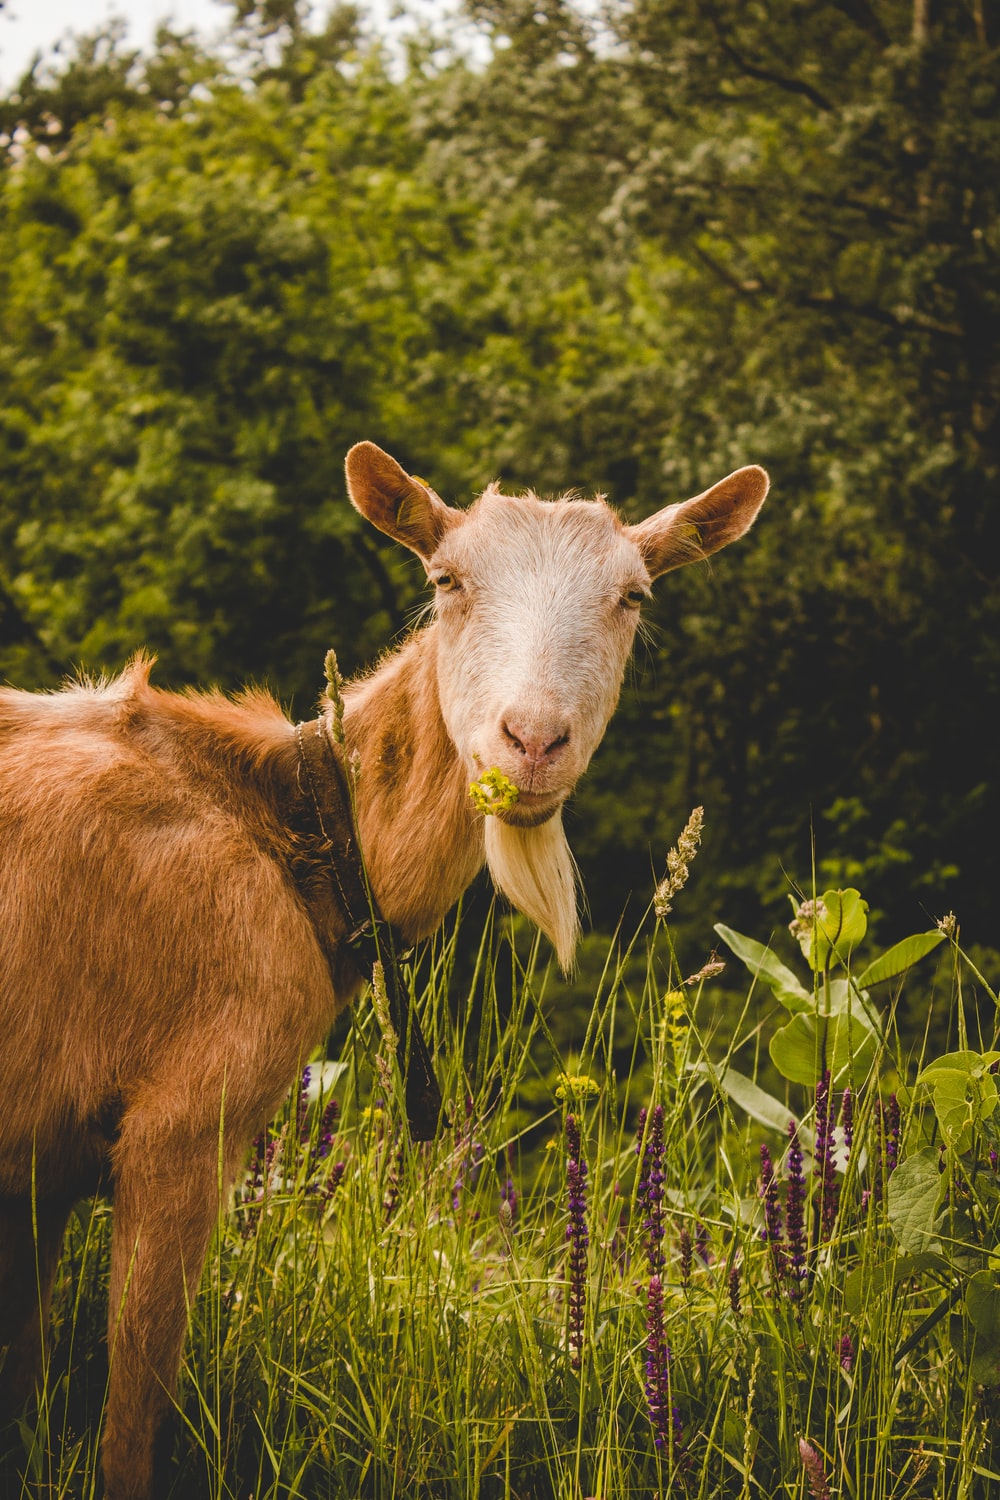 brown goat at forest eating grass